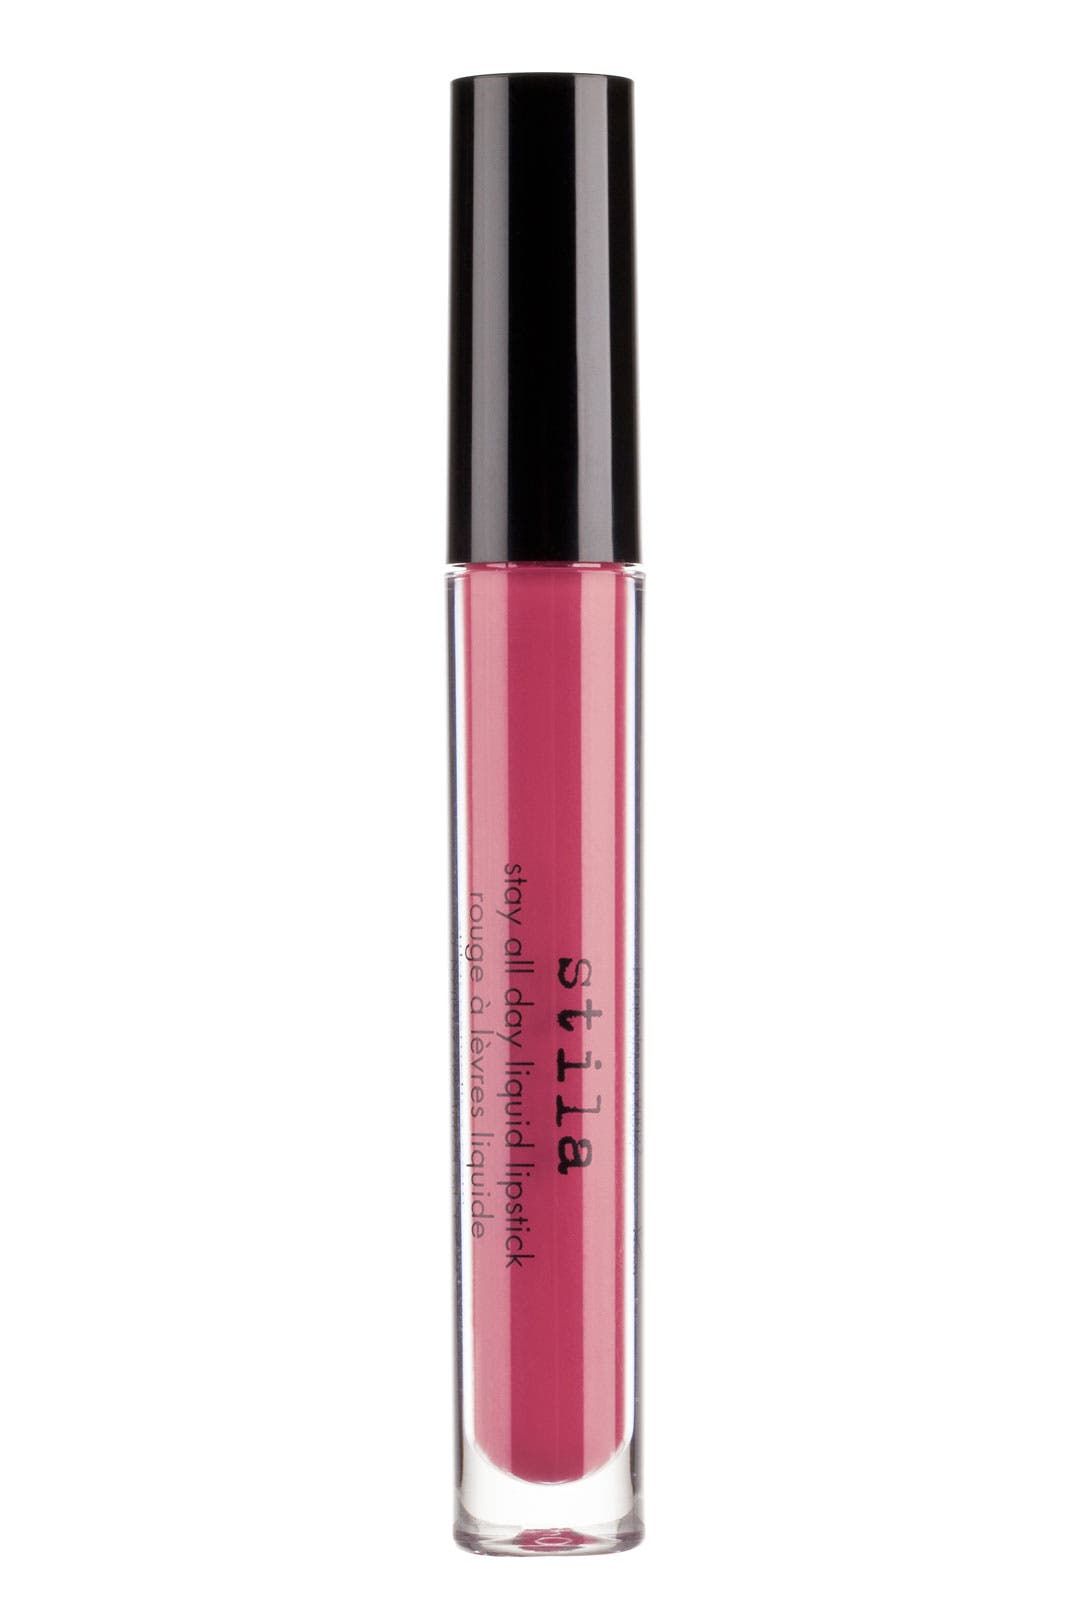 Stay All Day Liquid Lipstick in Aria by stila